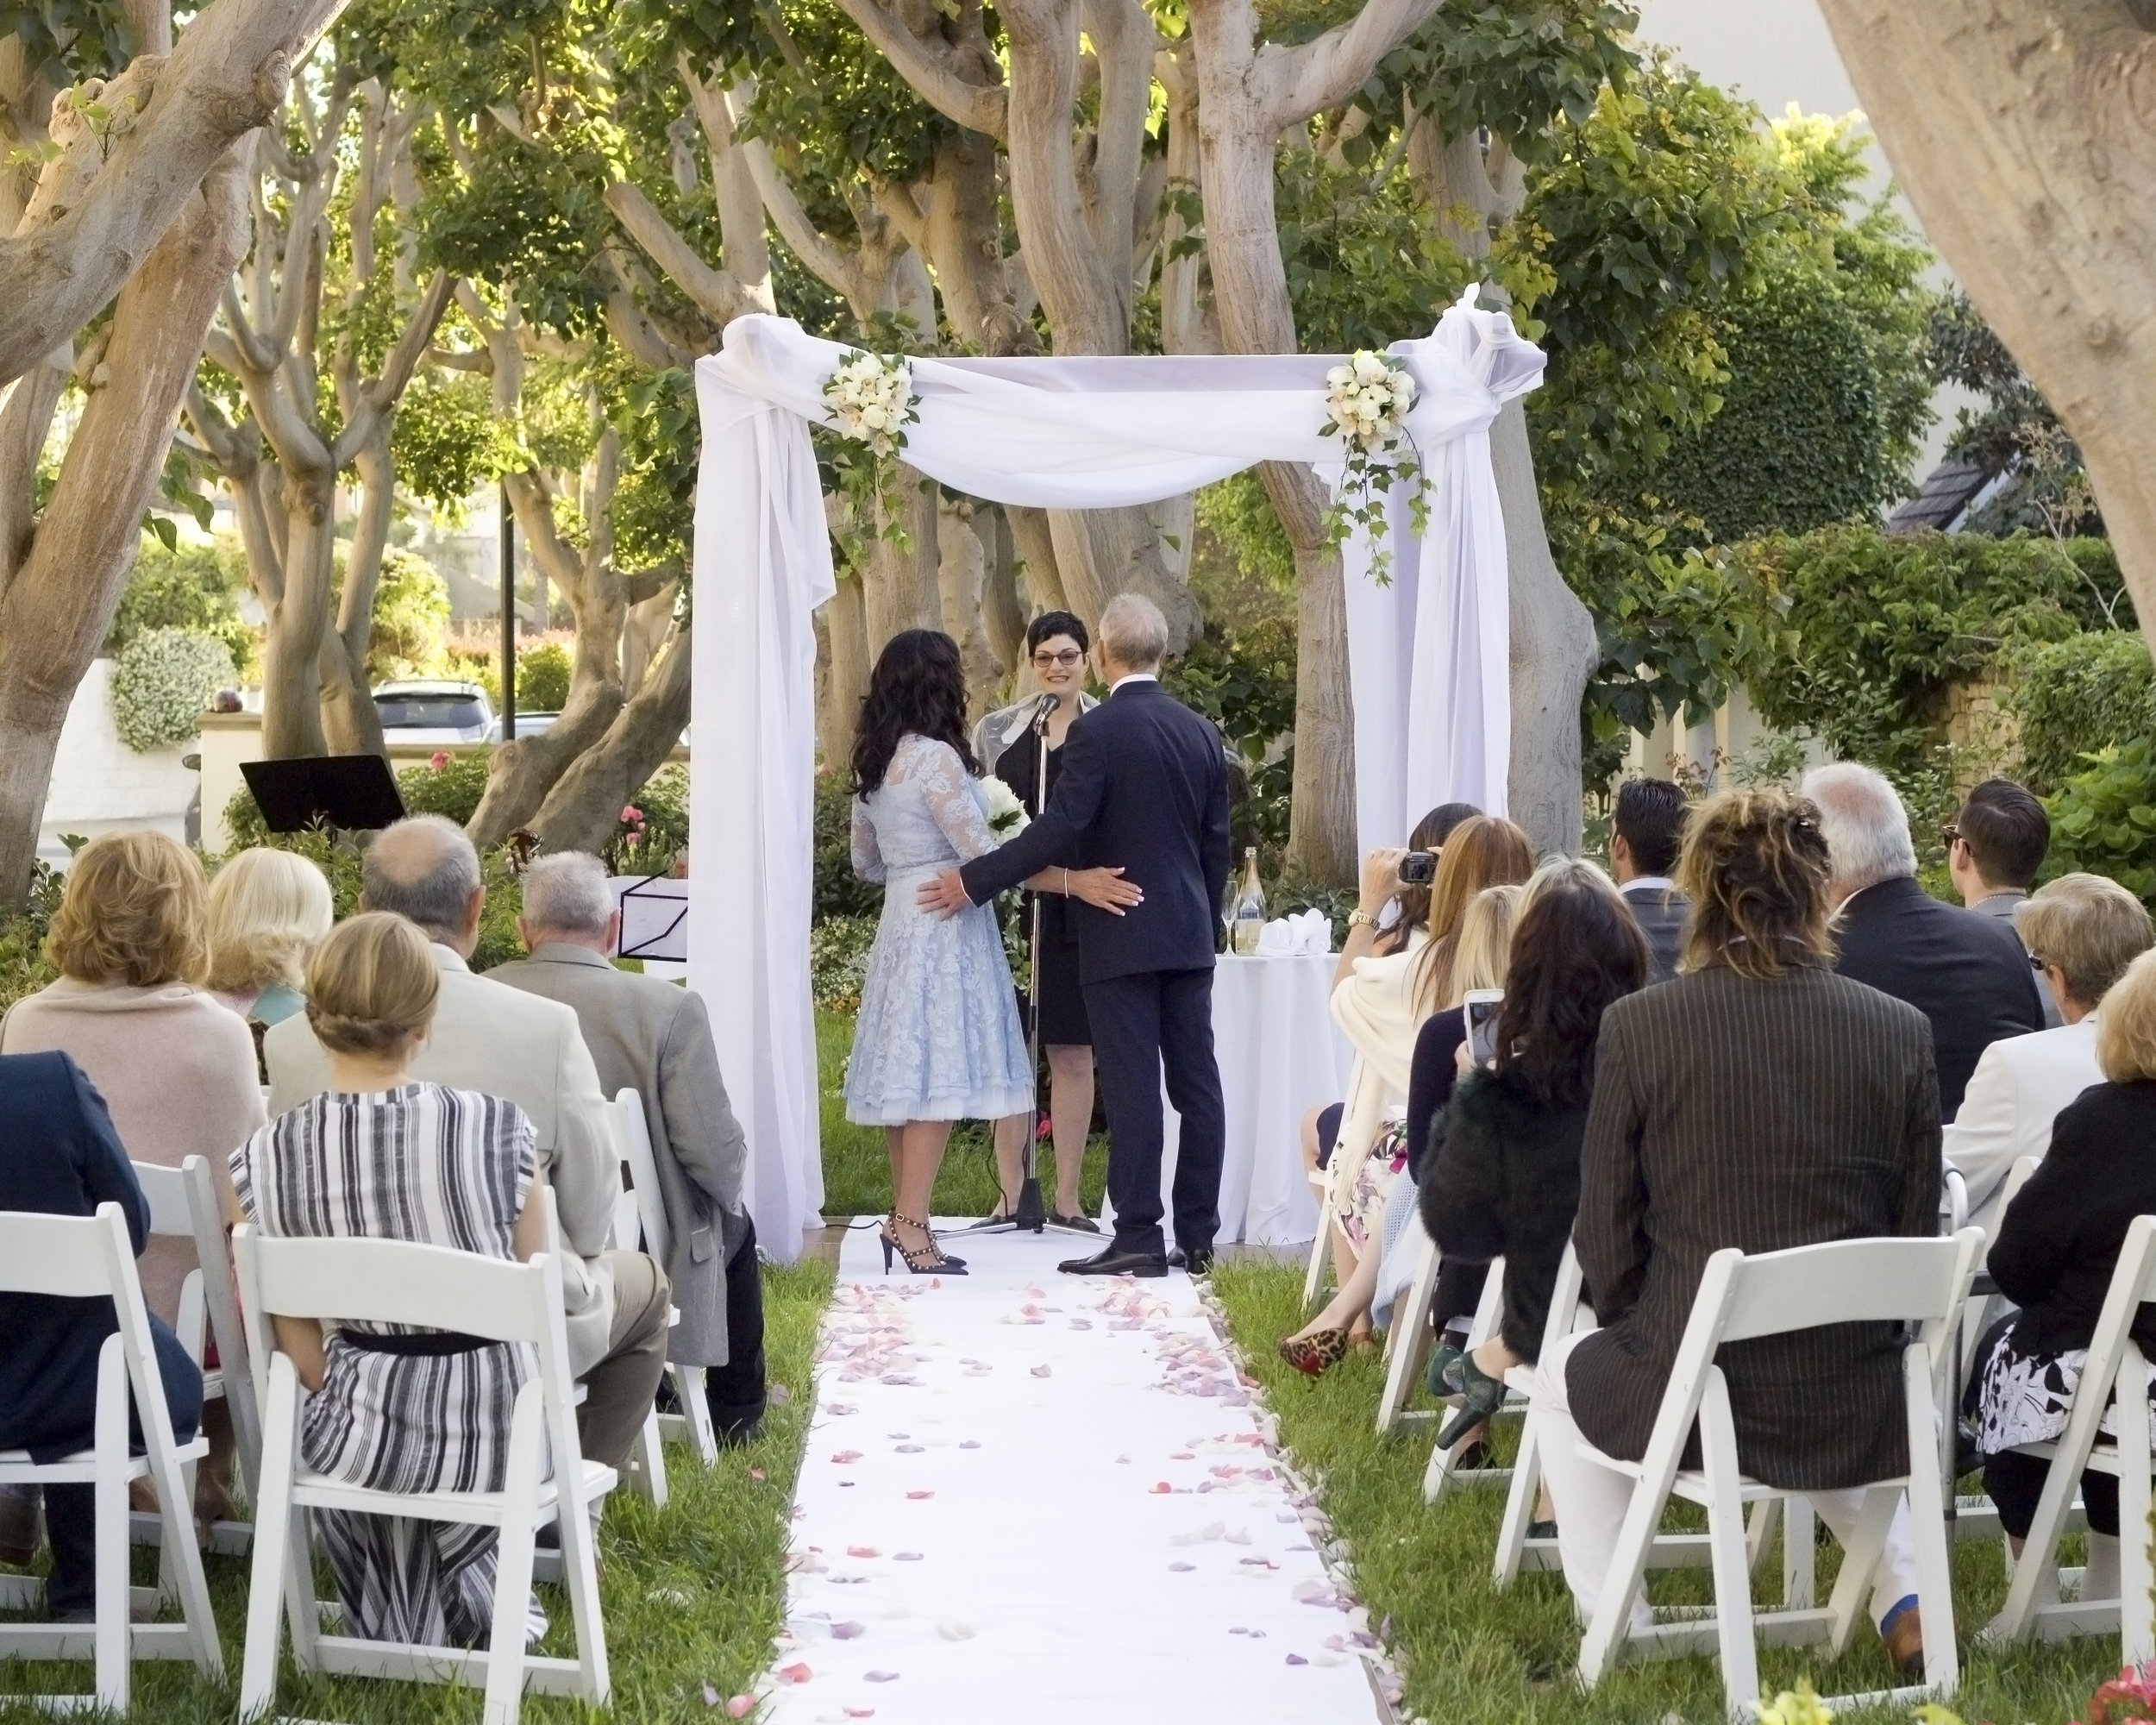 Rabbi Avivah officiates a summer wedding in Marina del Rey, Calif.